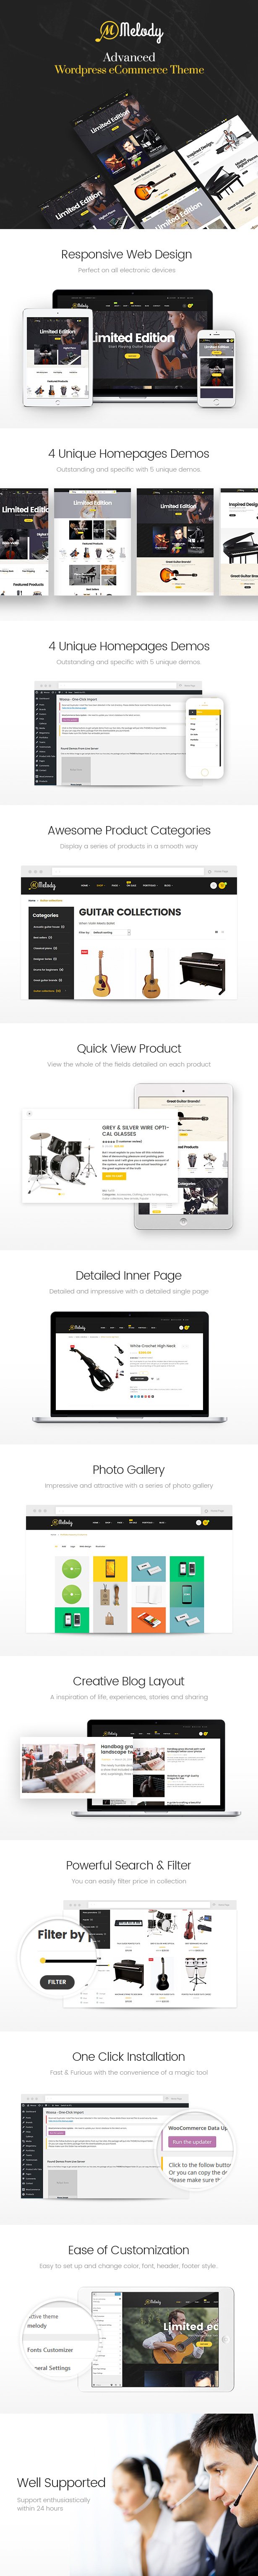 Woocommerce-WordPress-Template